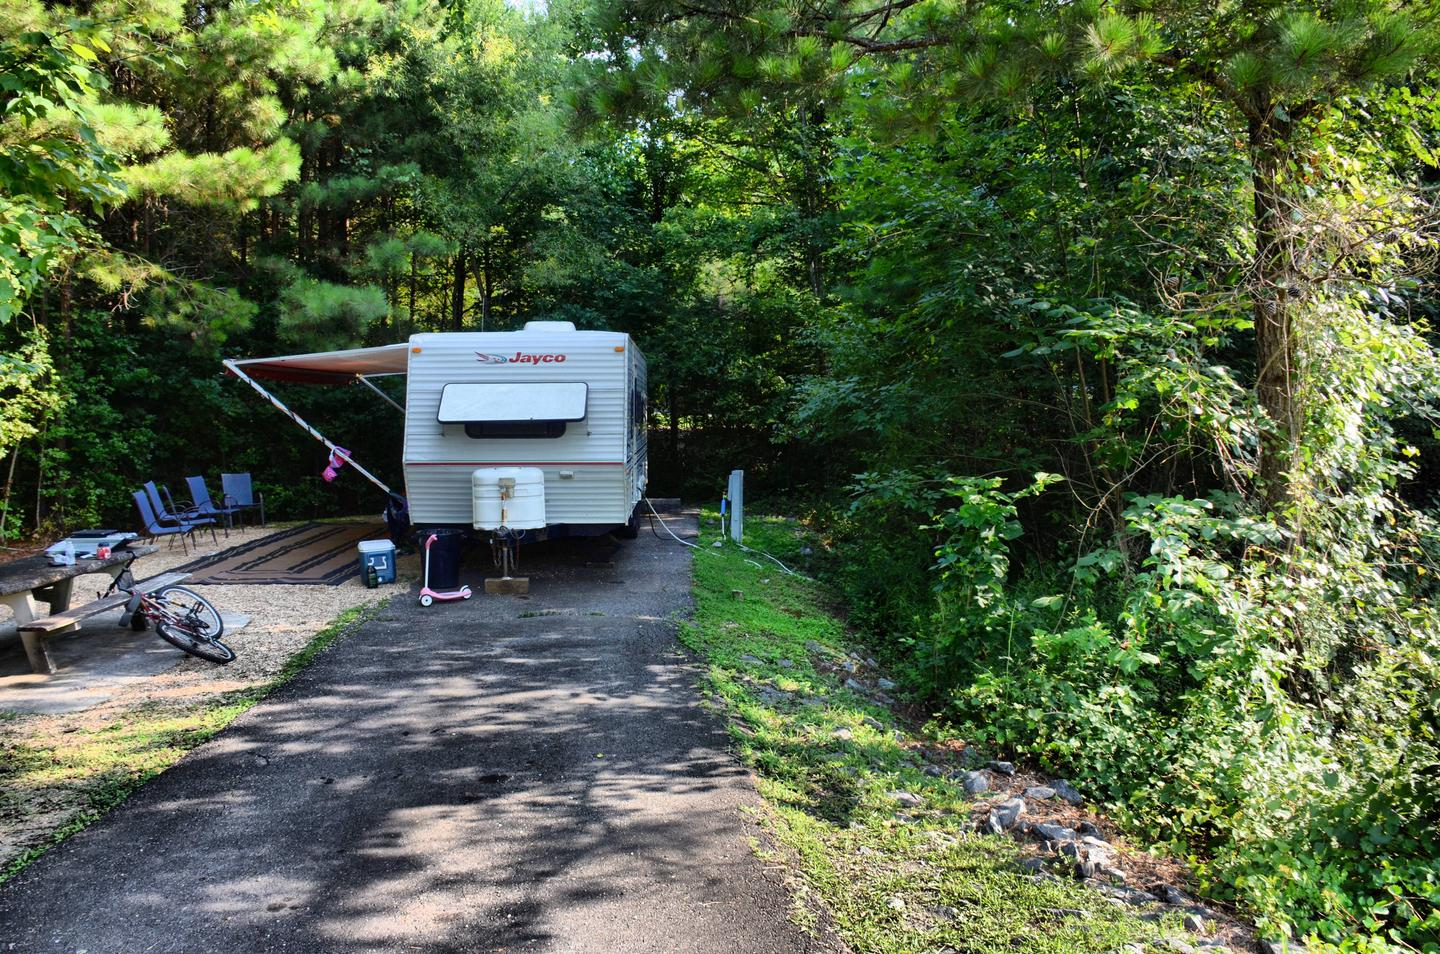 Utilities-side clearance, driveway slope.Payne Campground, campsite 22.